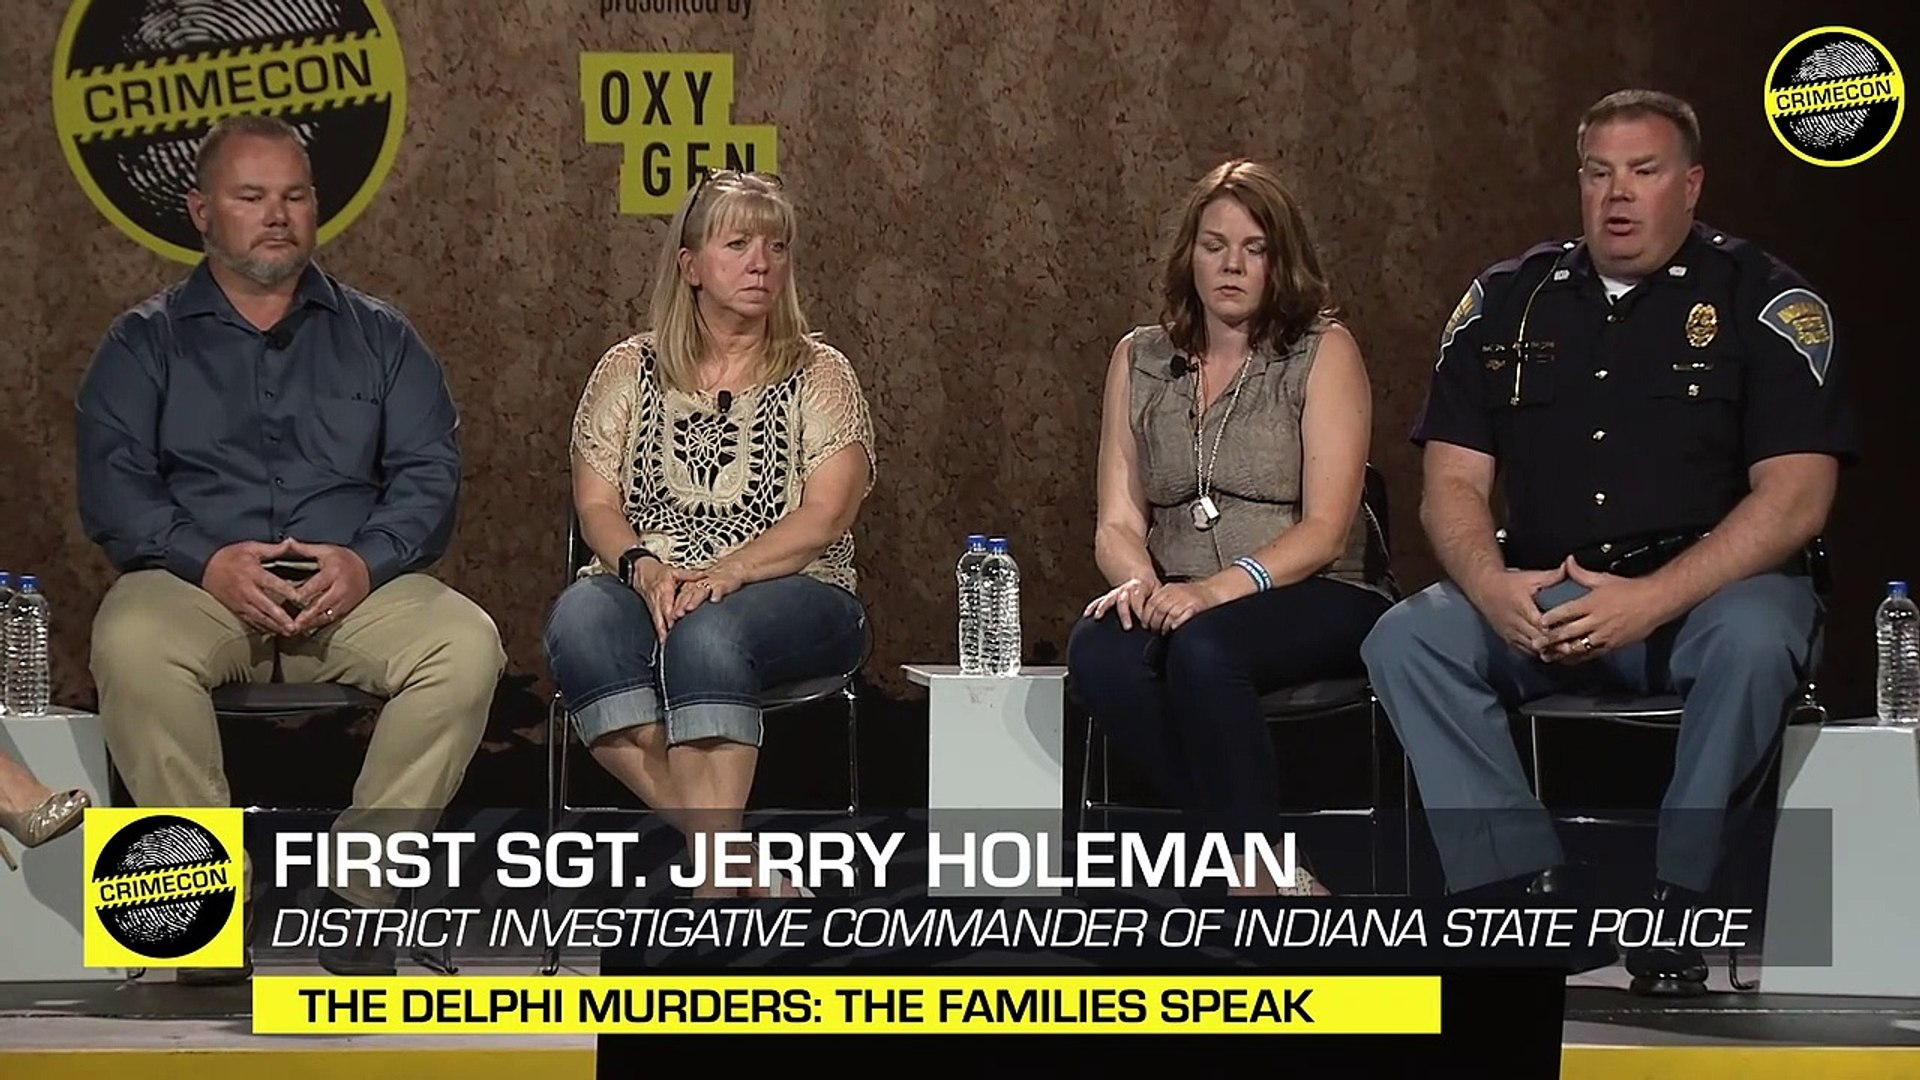 The Delphi Murders: The Families Speak – HLN's Ashleigh Banfield Moderates